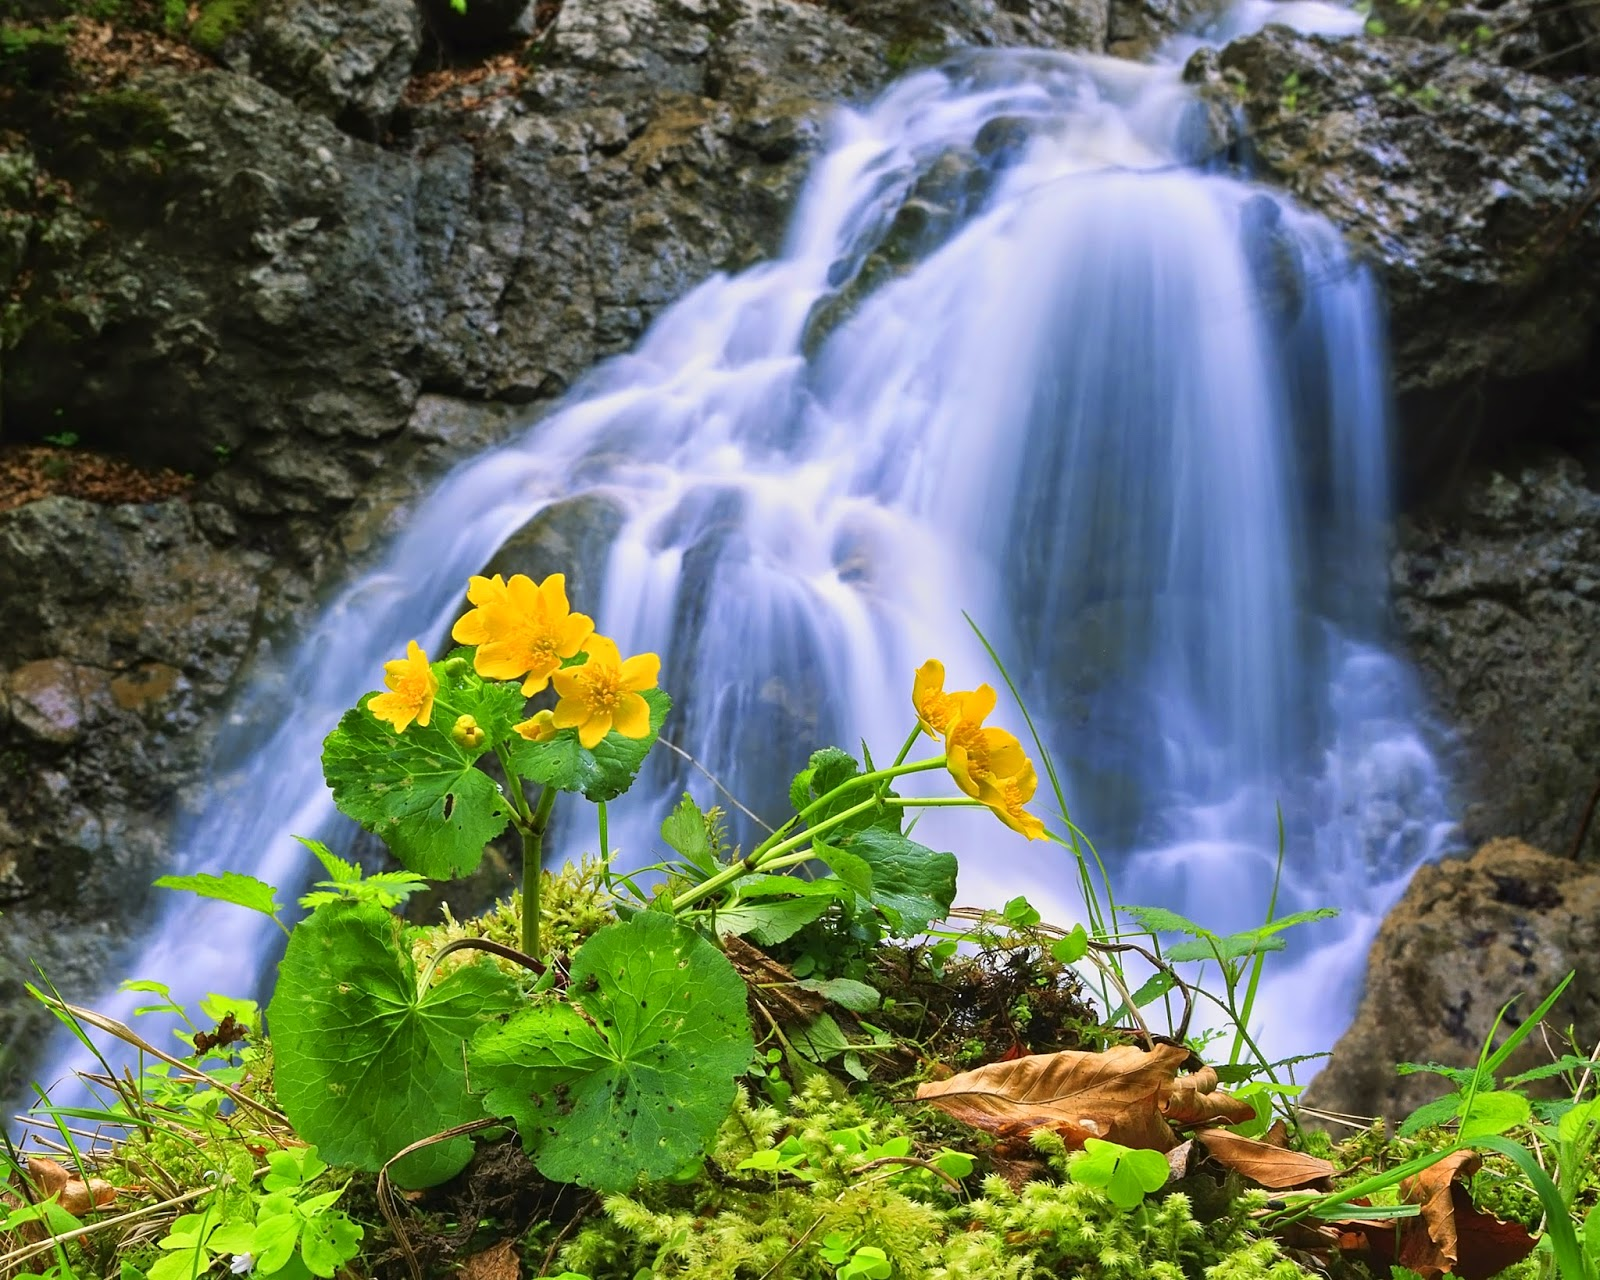 Beautiful Nature Images: Waterfall With Flowers | Beautiful Nature ...